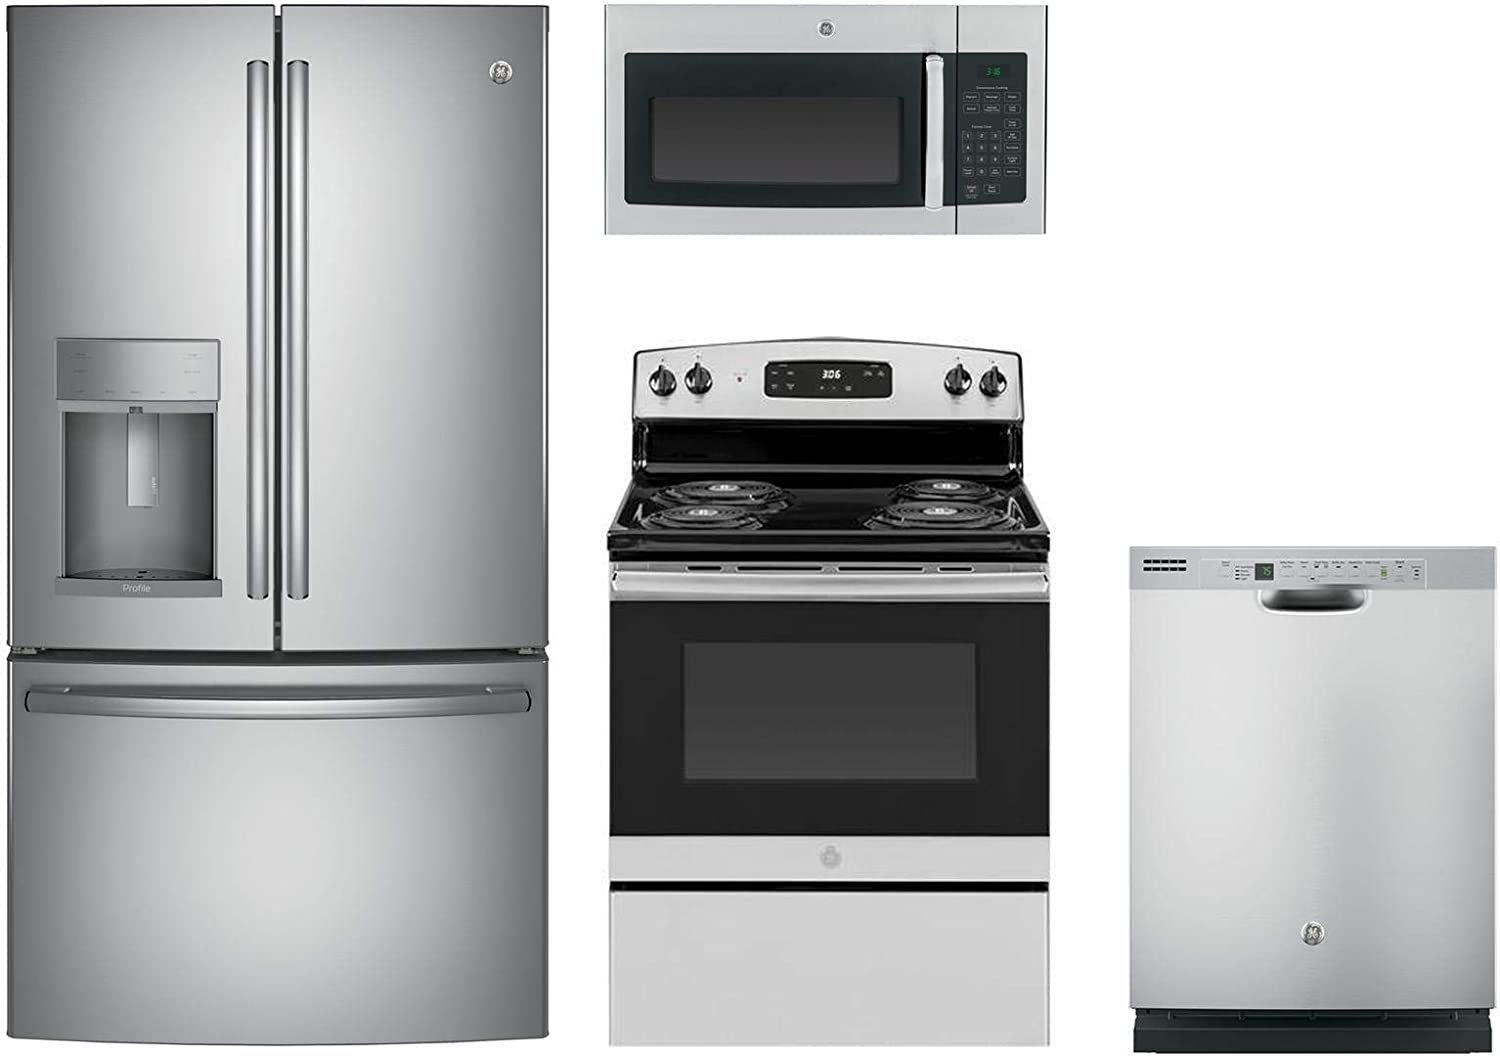 "GE Profile 4-Pcs Kitchen Package with PYE22KSKSS 36""Fridge, JBS360RMSS 30""Freestanding Ele. Range, JVM3160RFSS 30""Over-the-Range Microwave and GDF610PSJSS 24""Full Console Dishwasher in Stainless Steel"